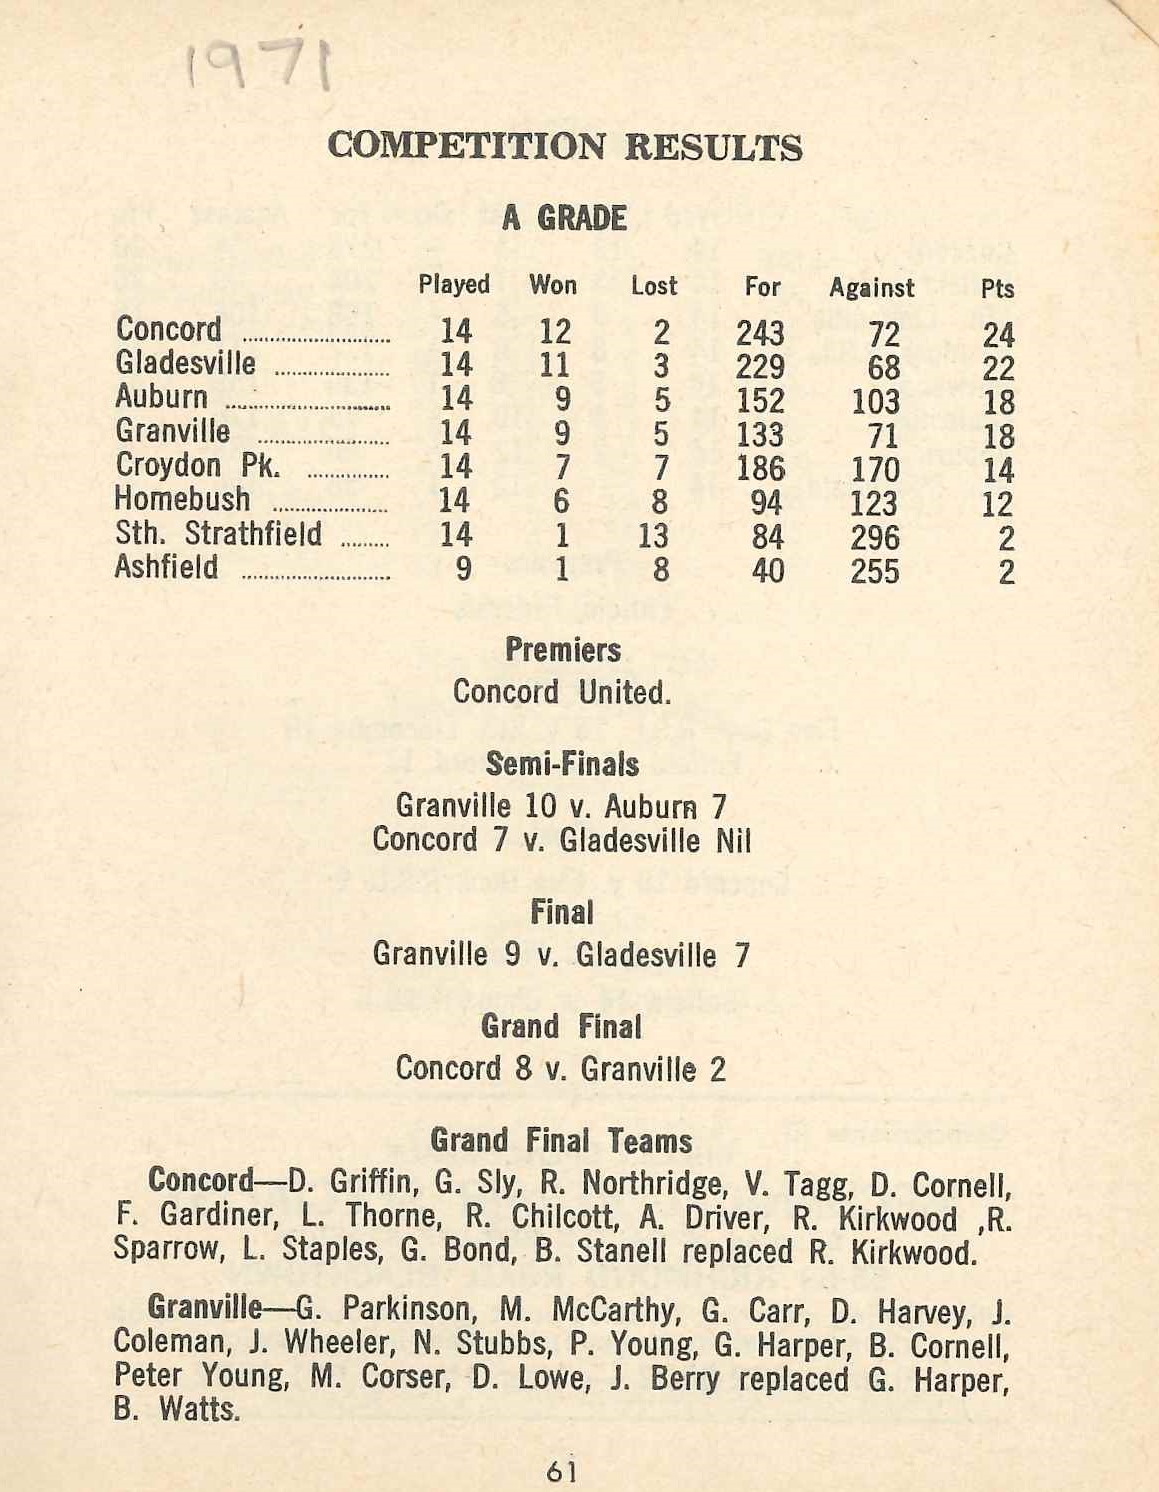 1971 A Grade Premiership table - Yearbook